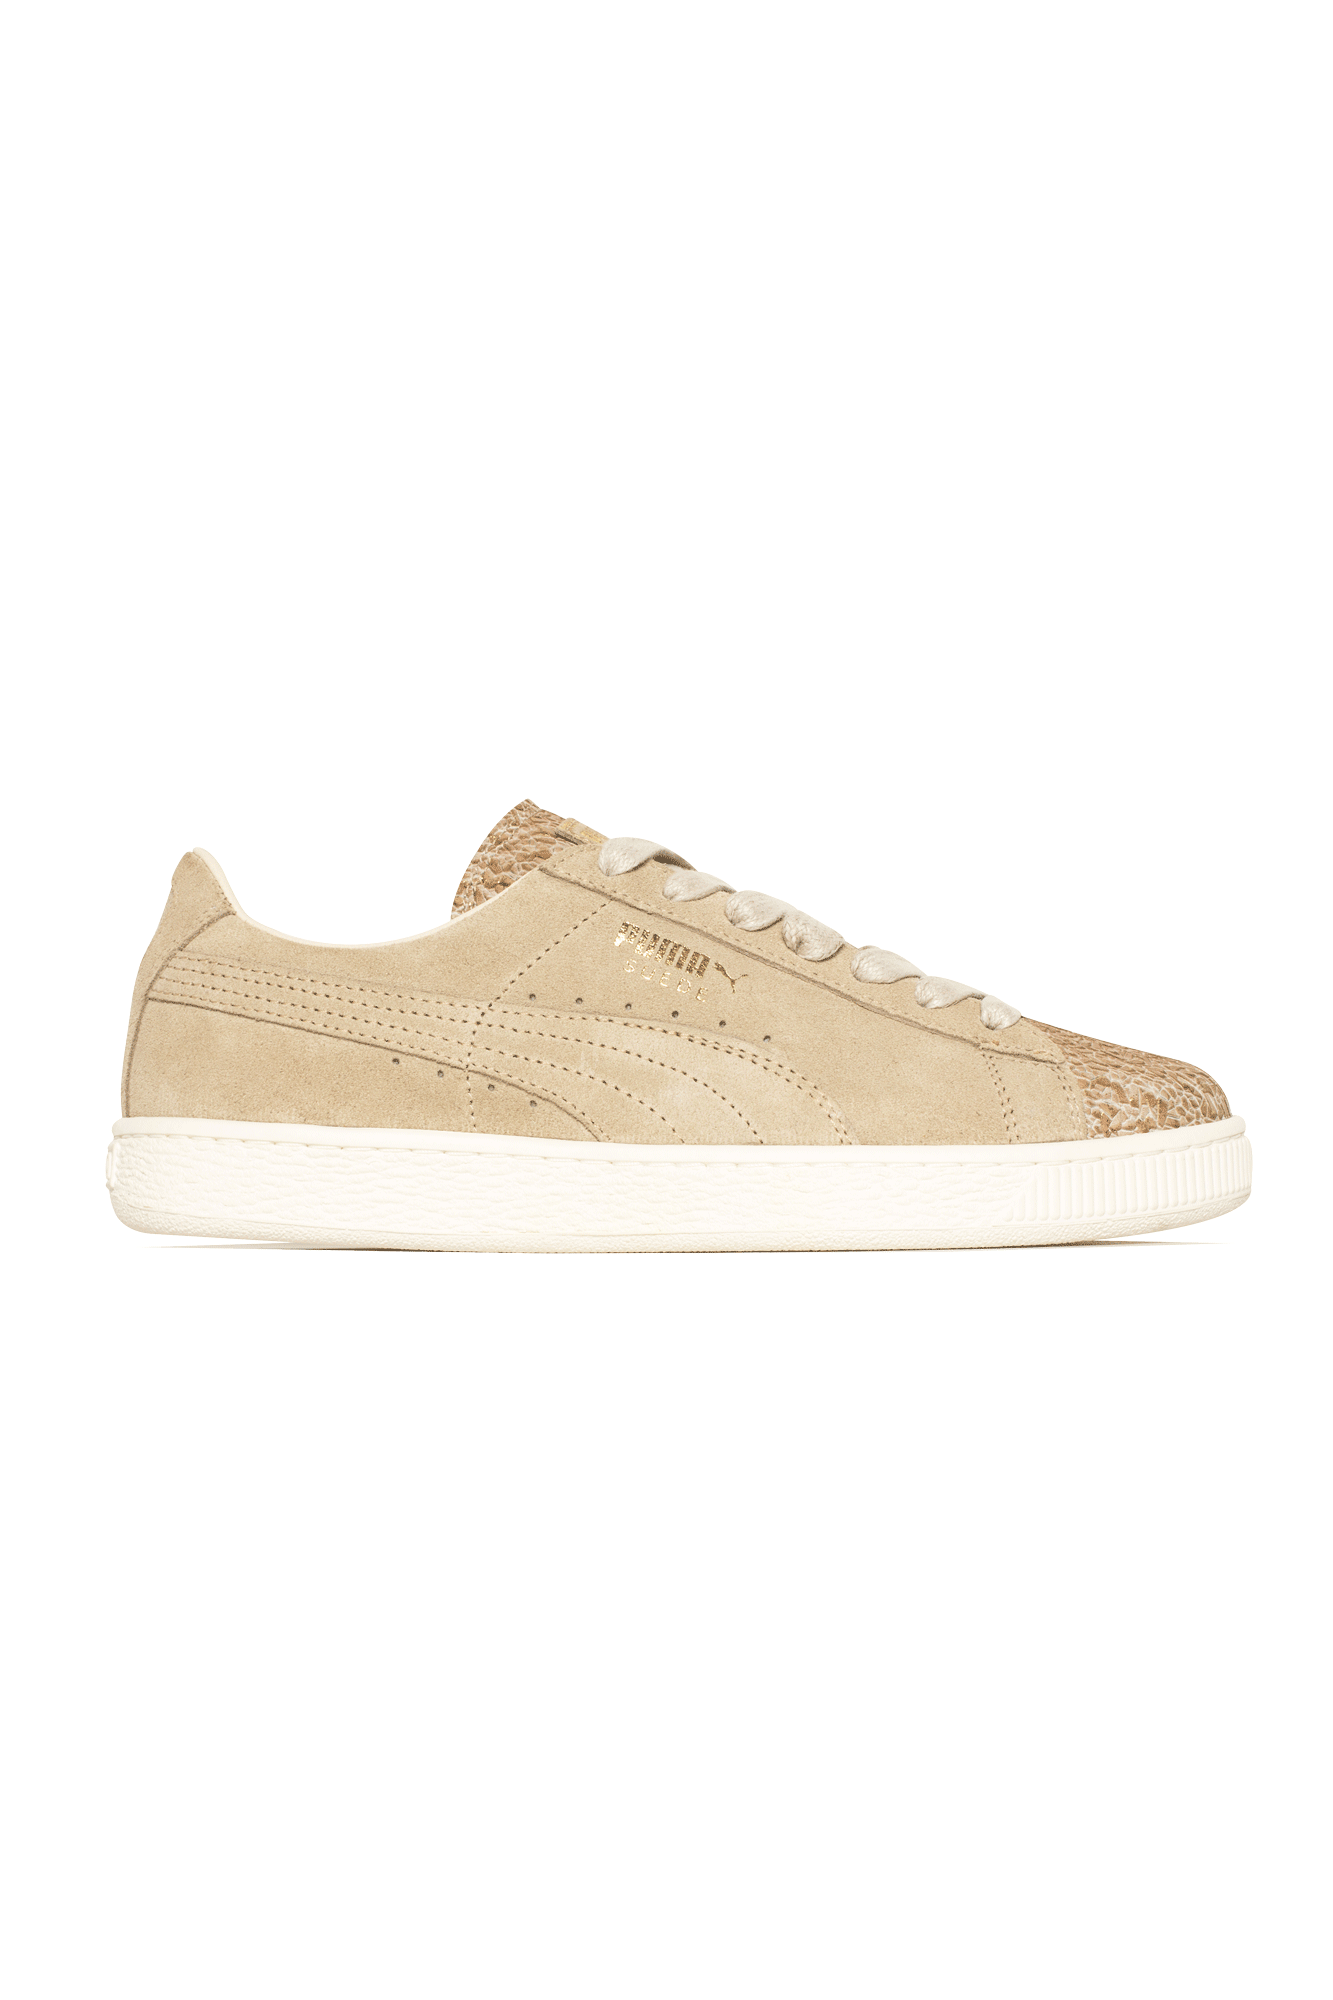 Puma Sneakers Suede Classic x Golden Desert Wn's Bianco 367176#000#01#6 - One Block Down